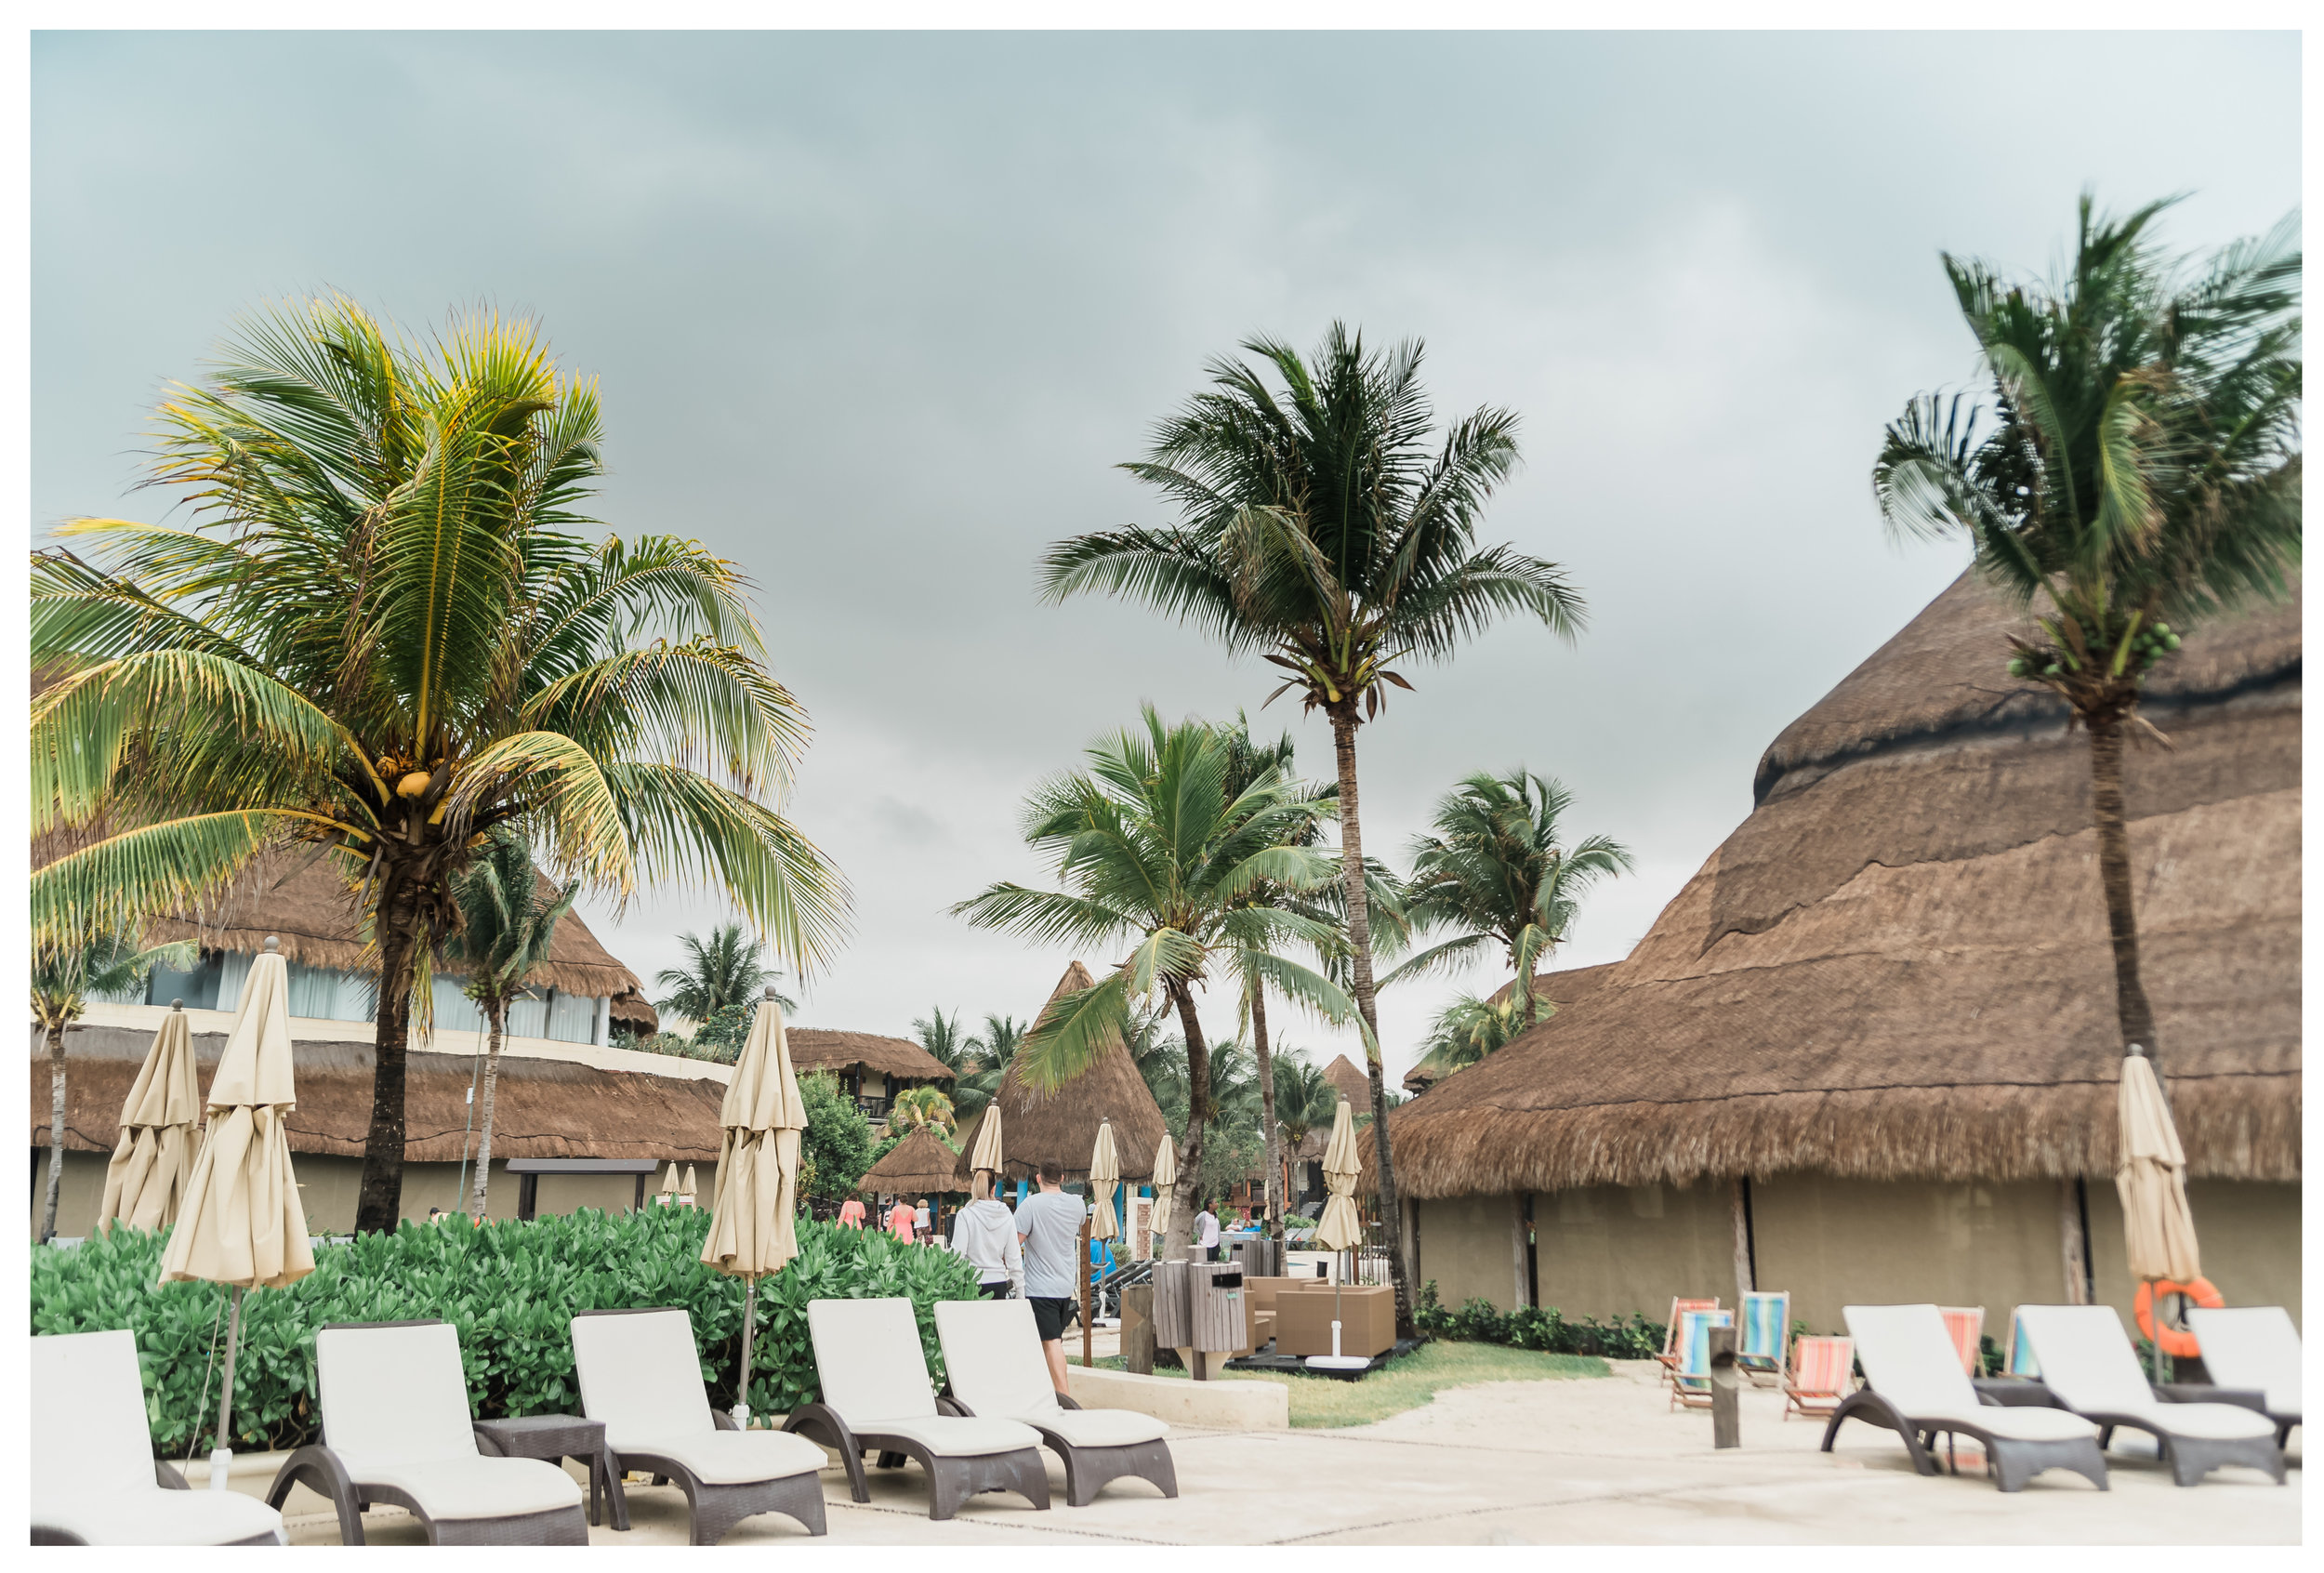 palm trees at the riviera maya Catalonia resort in Cancun Mexico for destination wedding